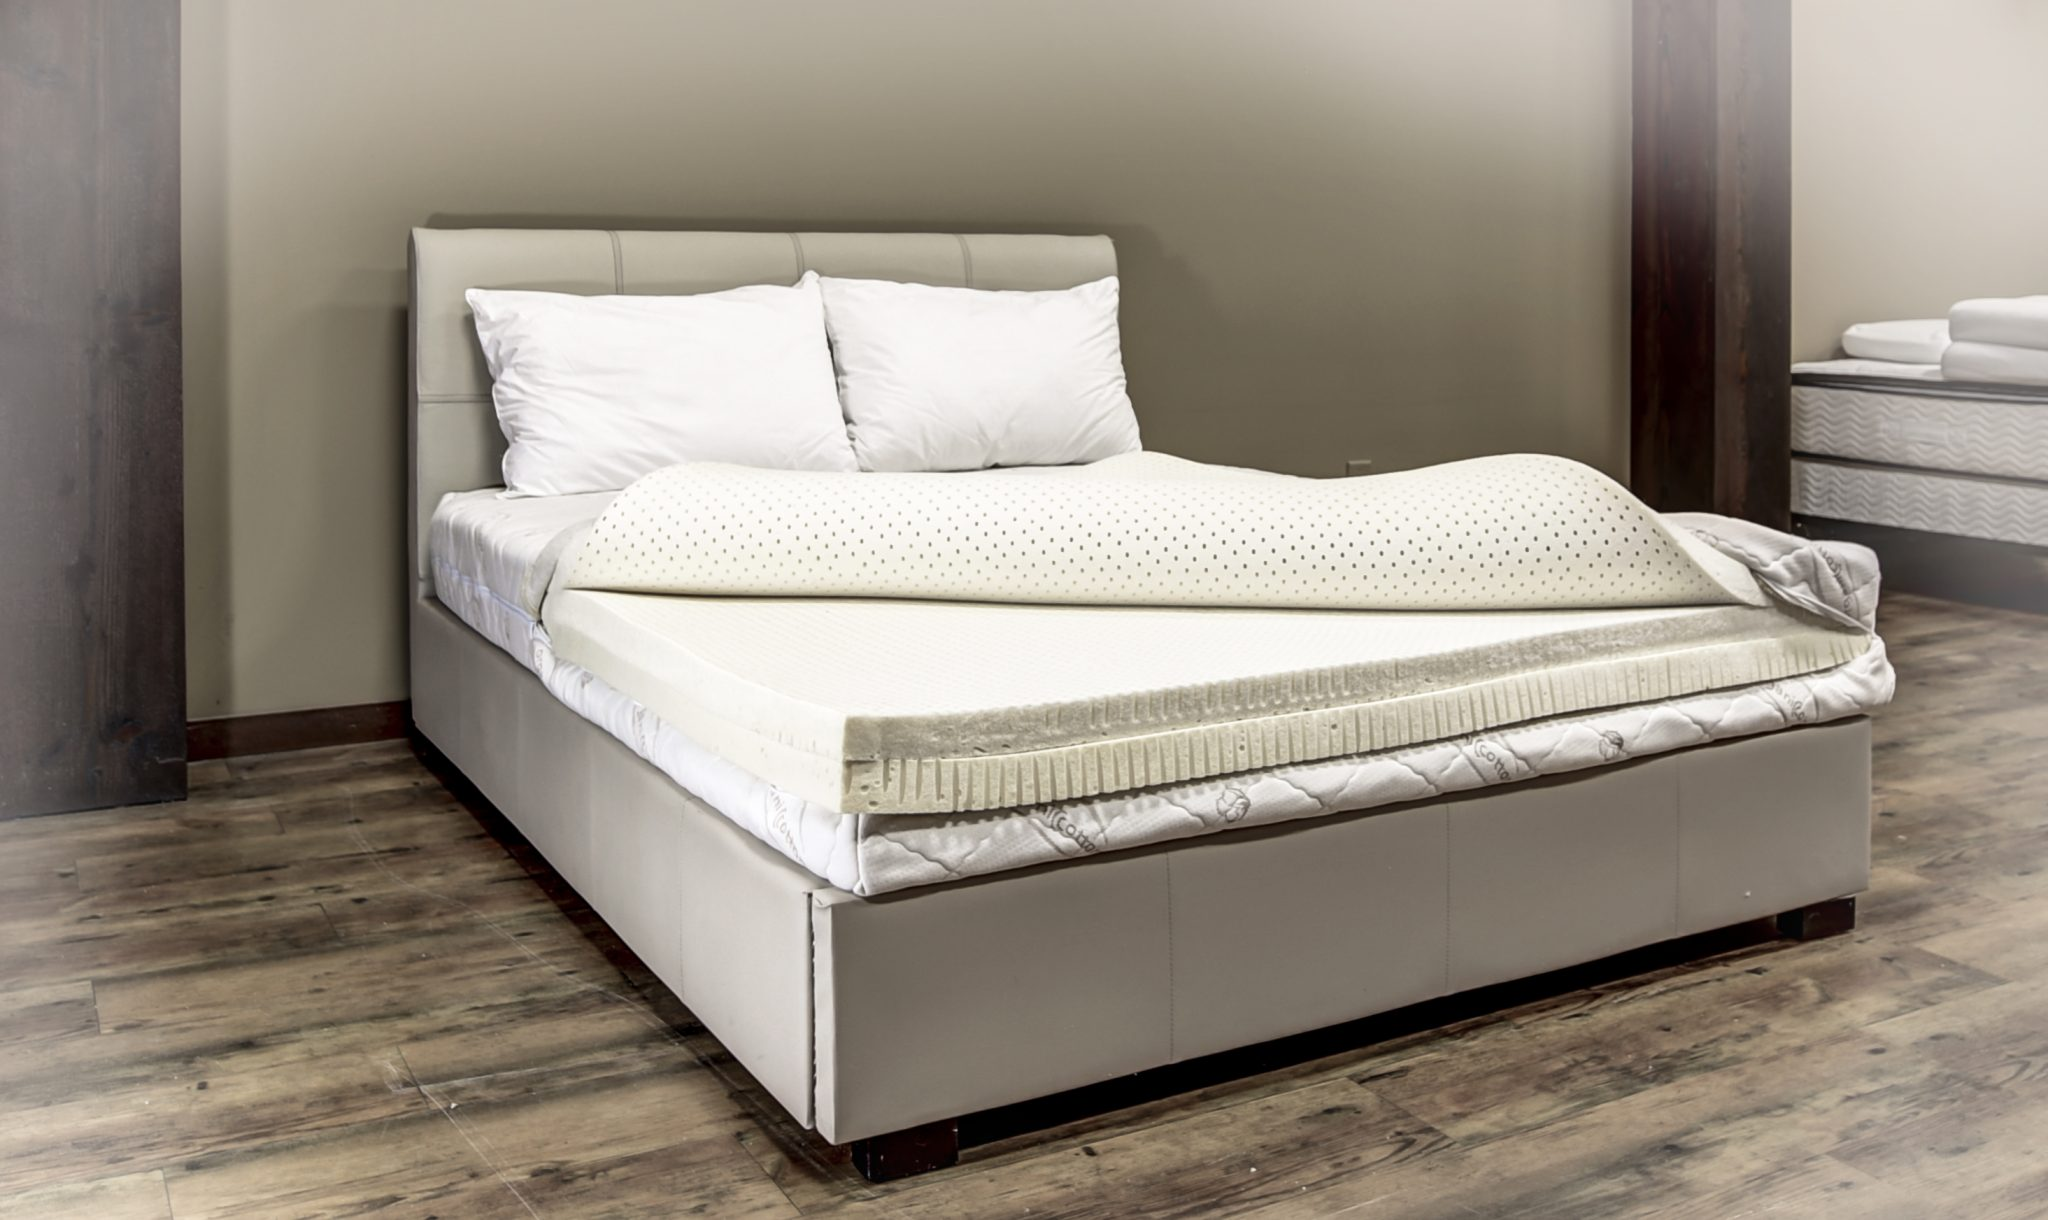 Majestic Mattress Mattress Store Amp Bedroom Furniture Outlet